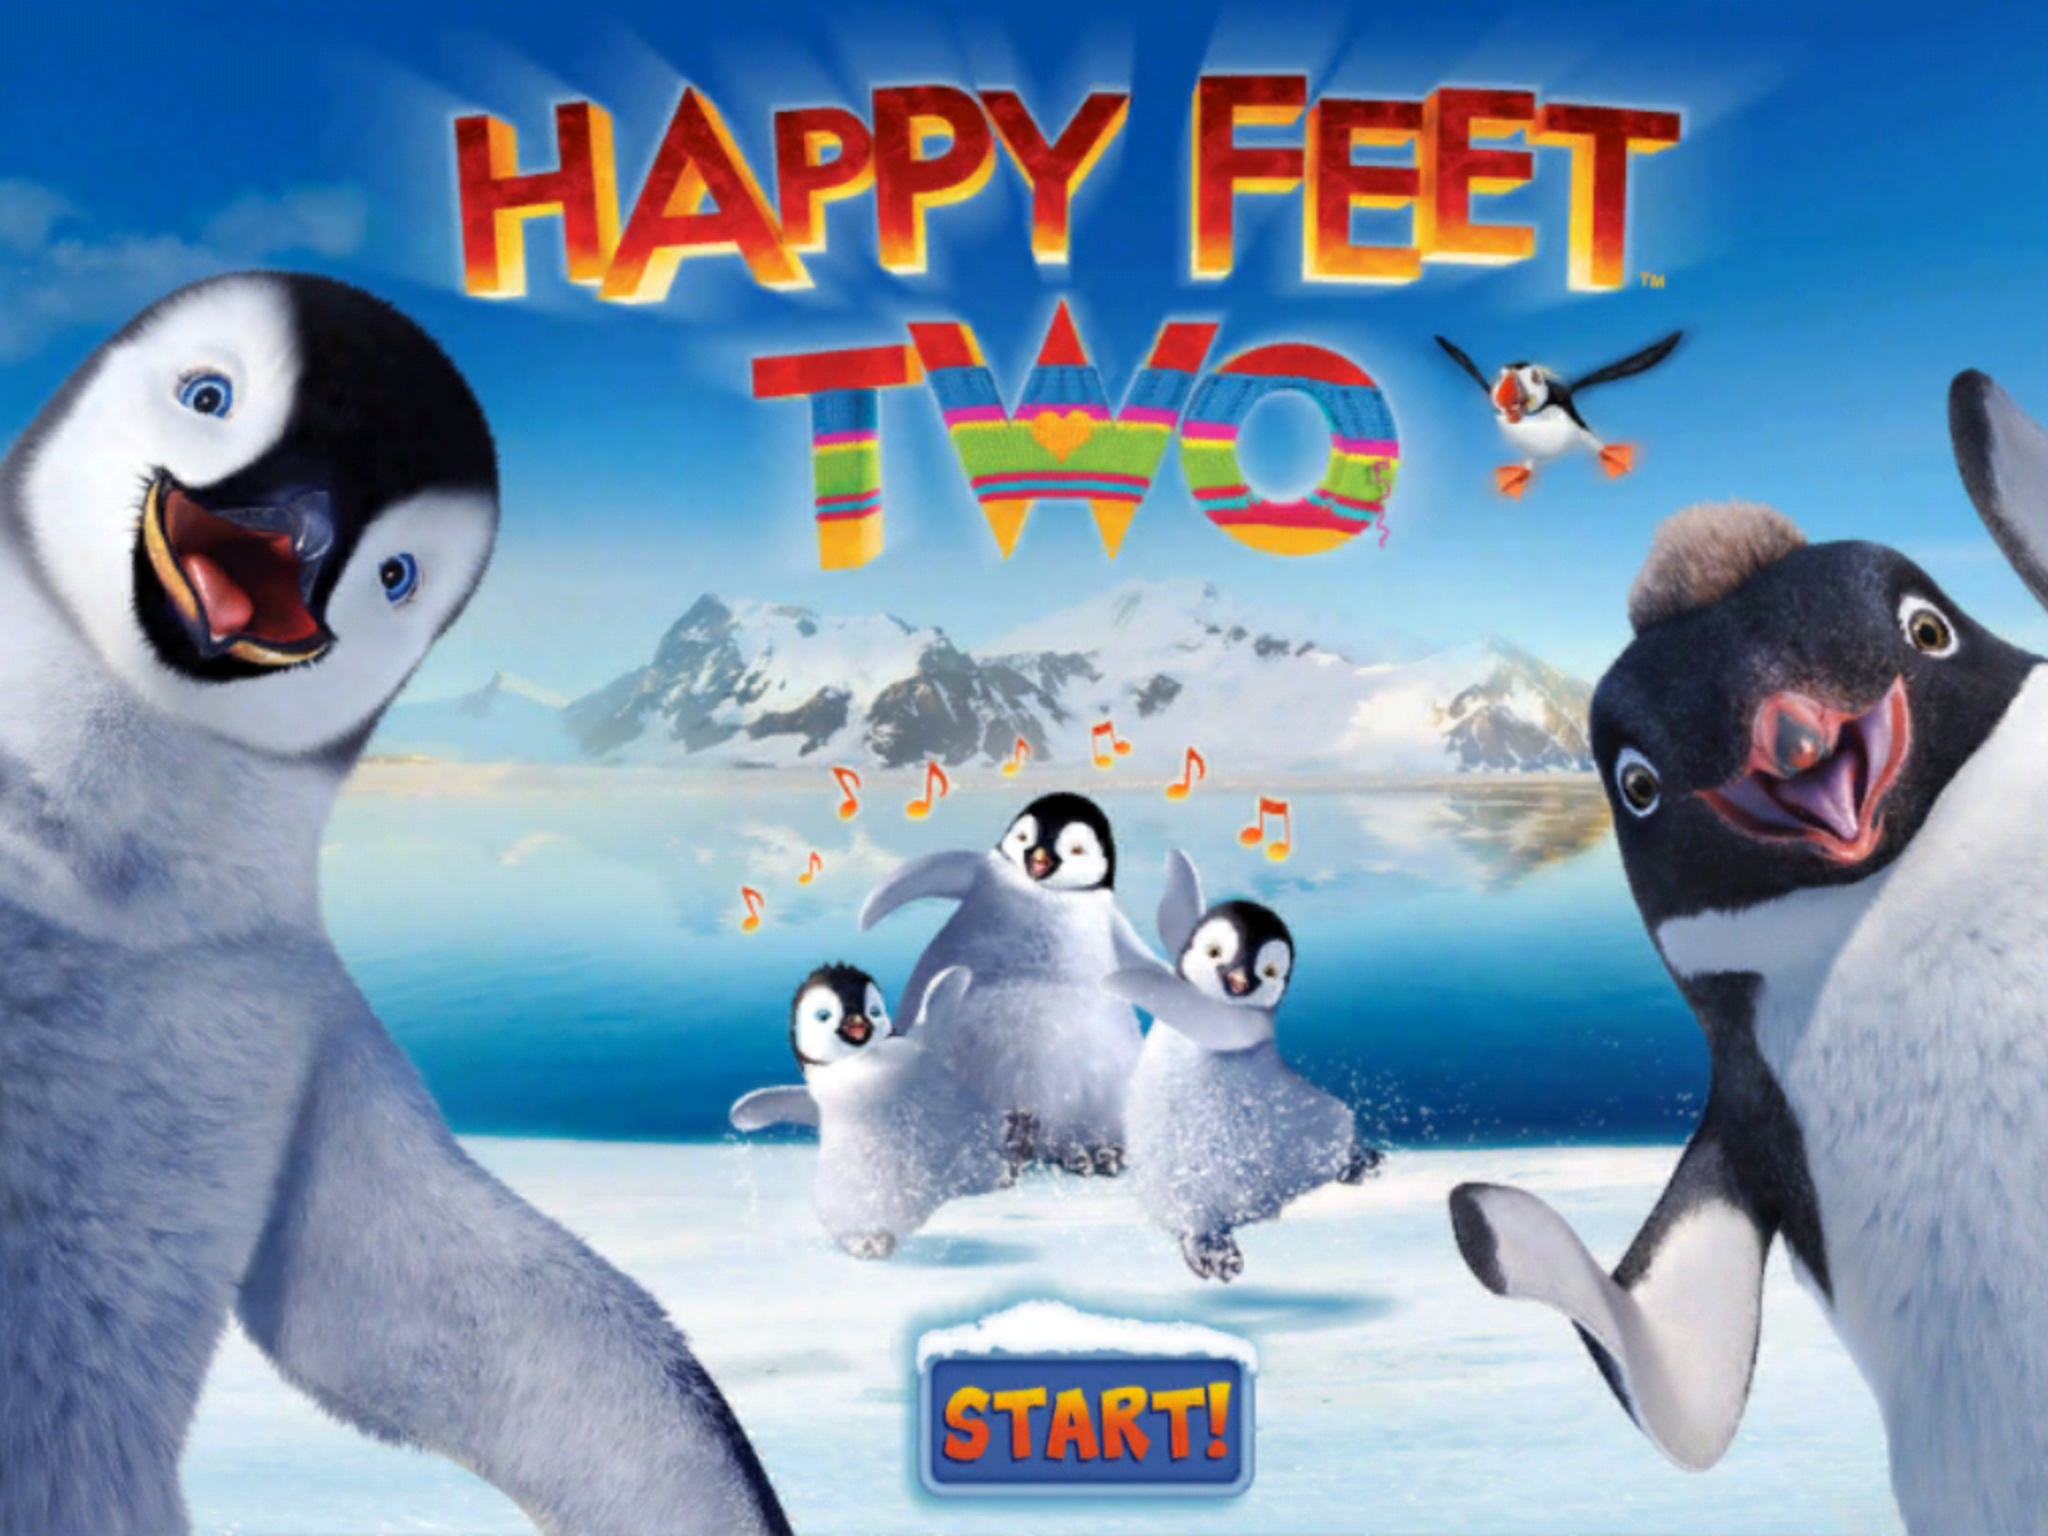 happy feet 2 images happy feet two game hd wallpaper and background